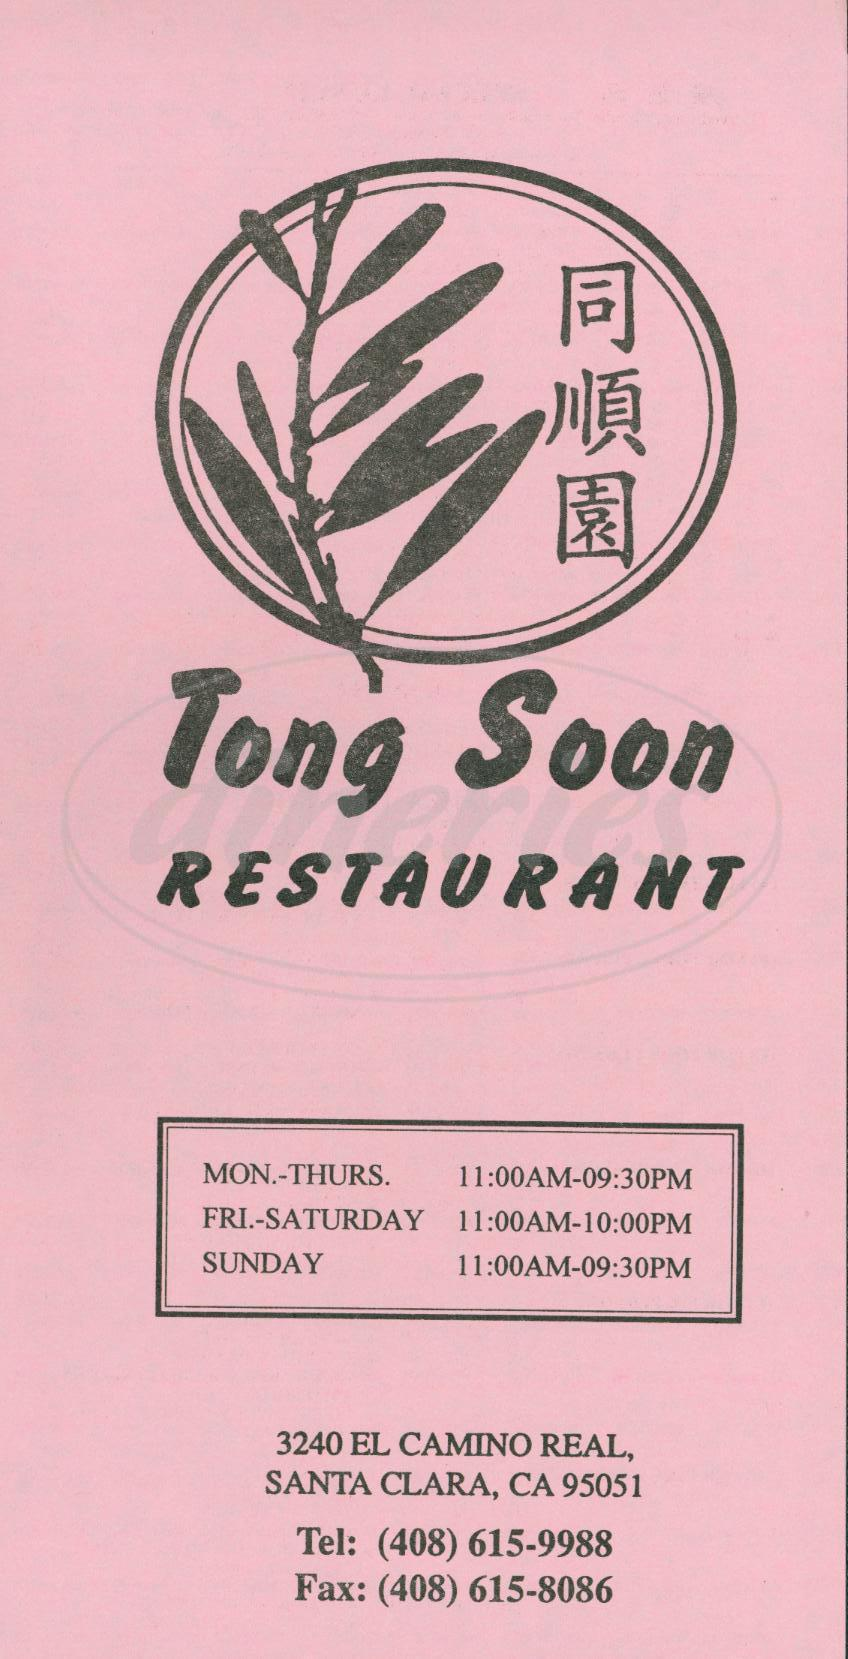 menu for Tong Soon Garden Restaurant